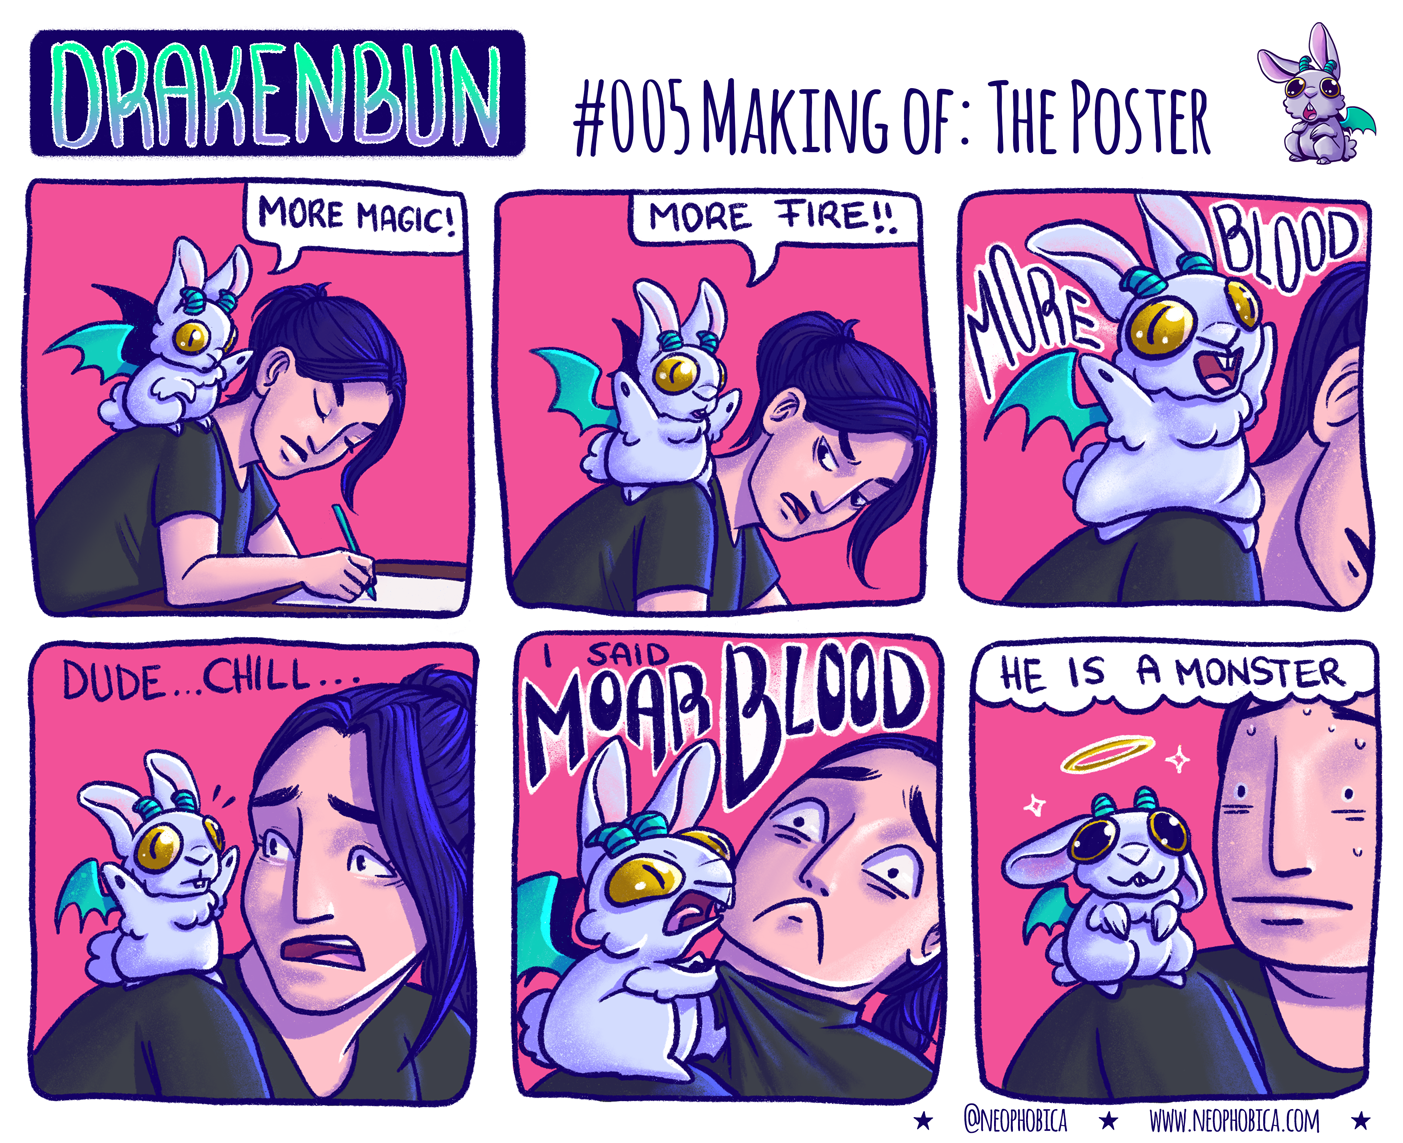 #005 Making of: The Poster